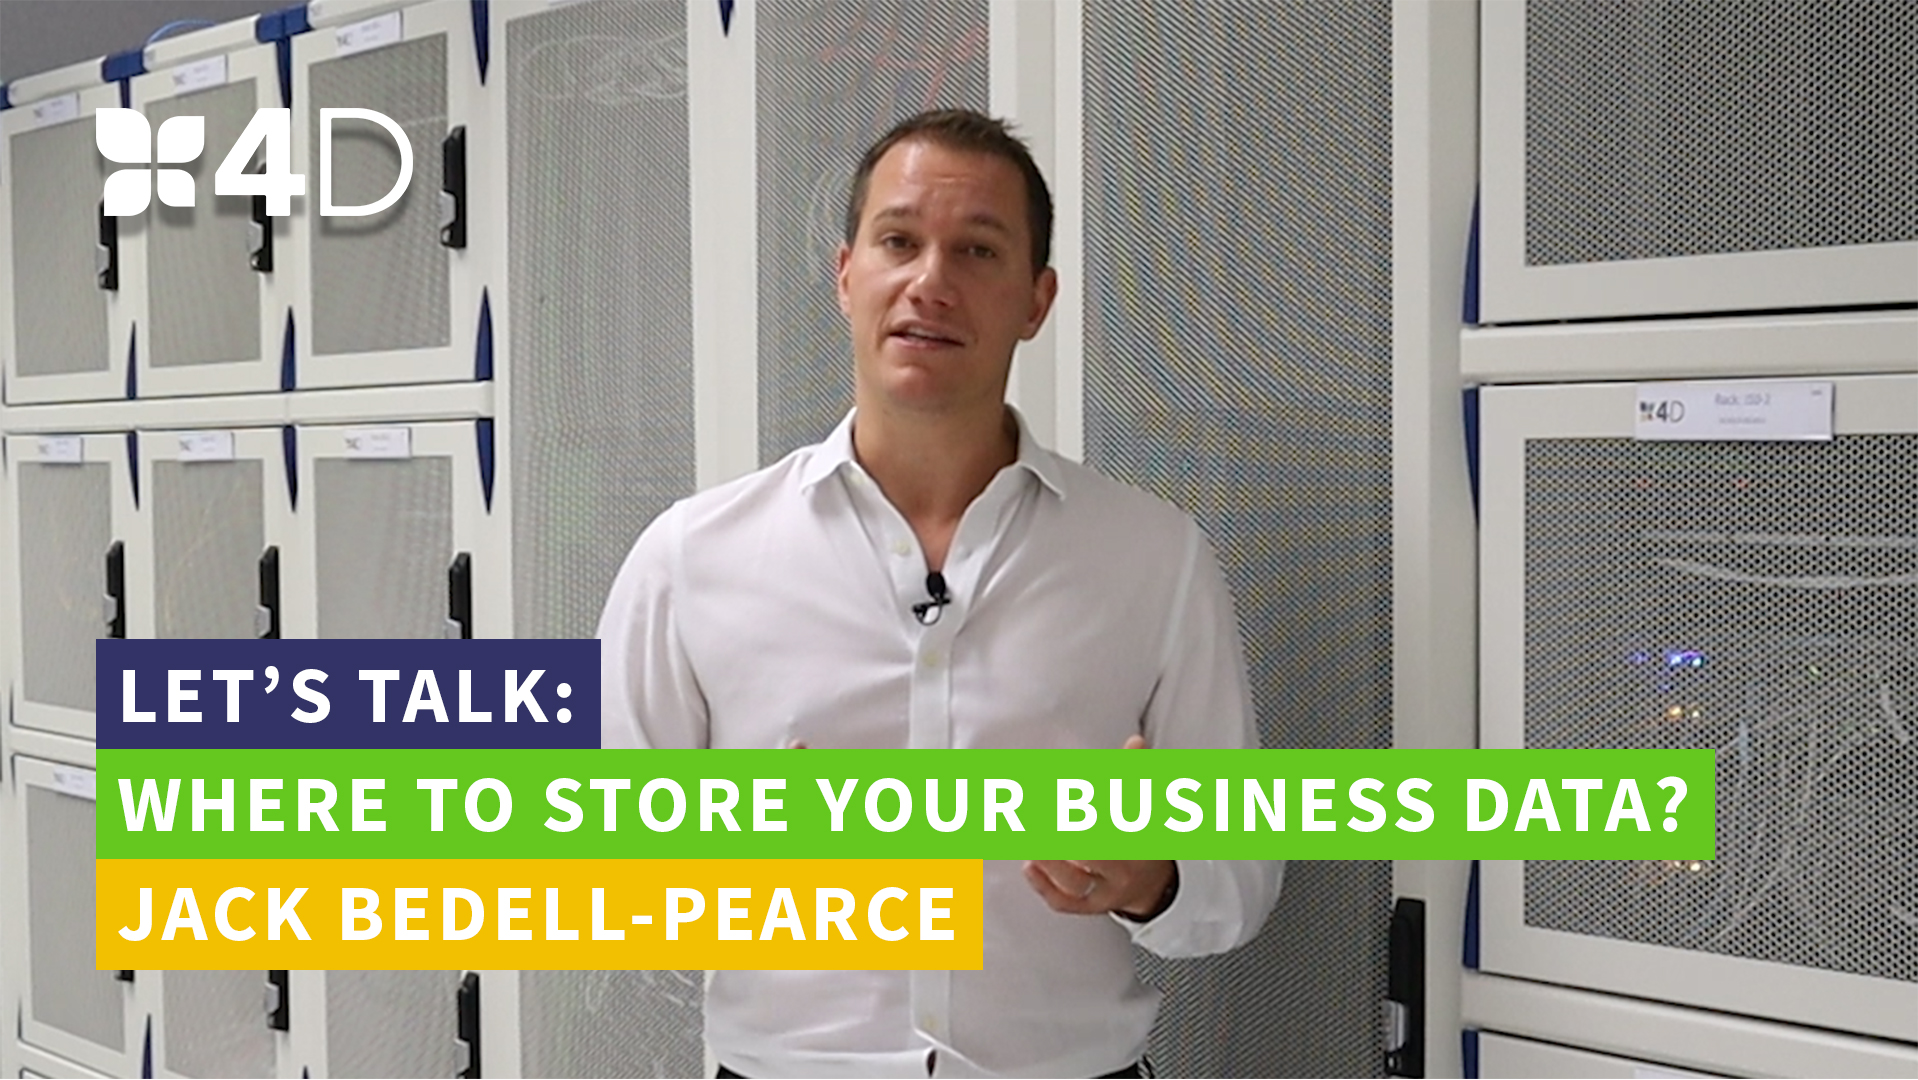 4D - Where to store your business data - JBP mq